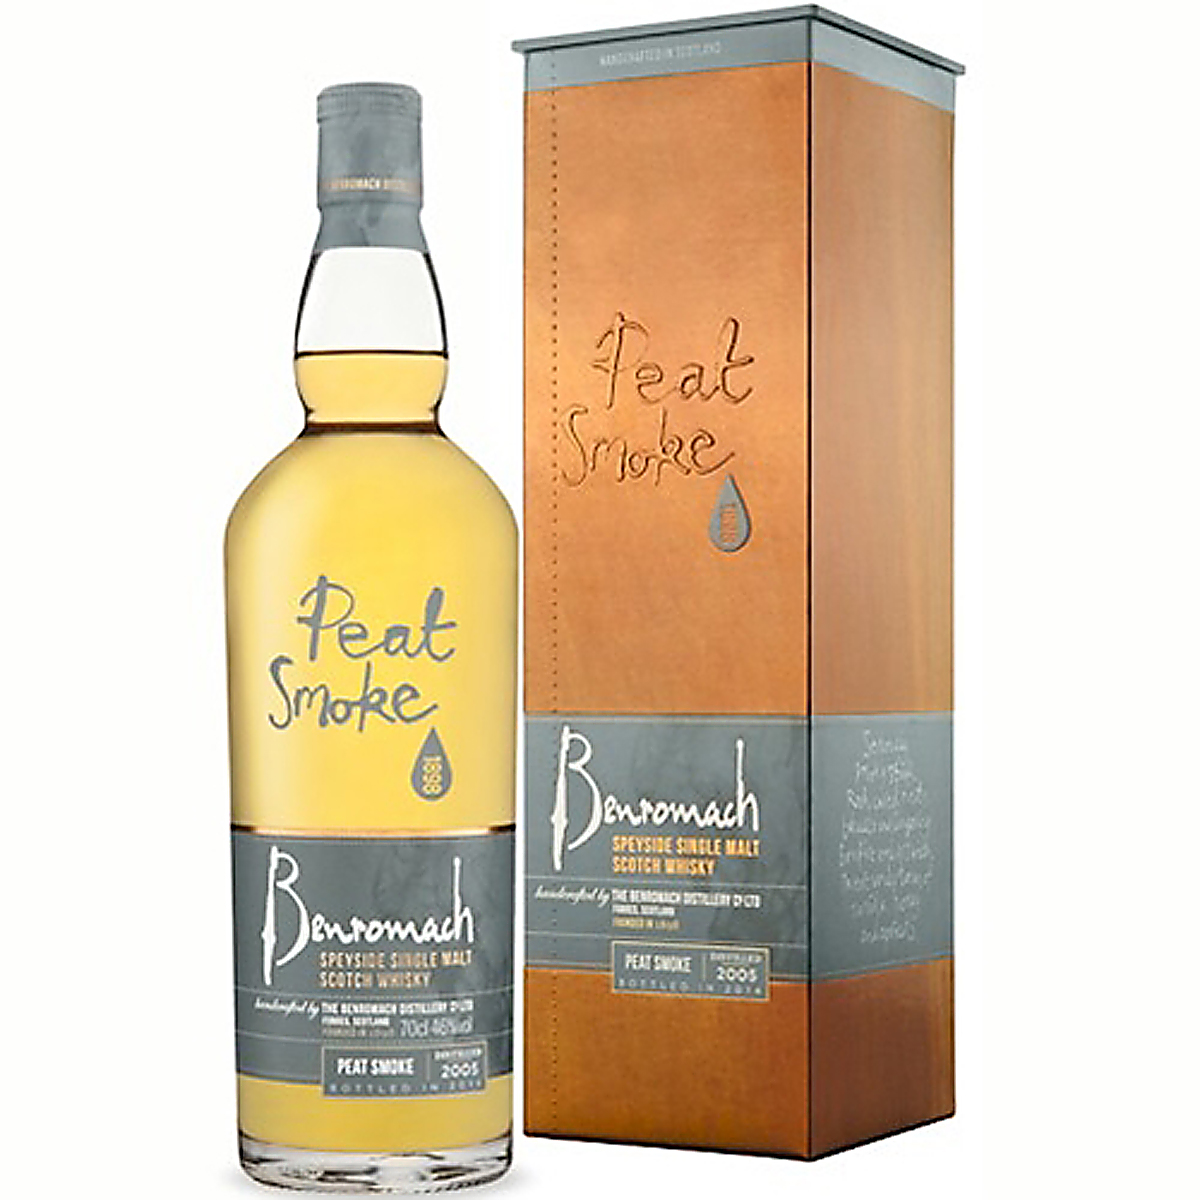 BENROMACH PEAT SMOKE 46% 70cl